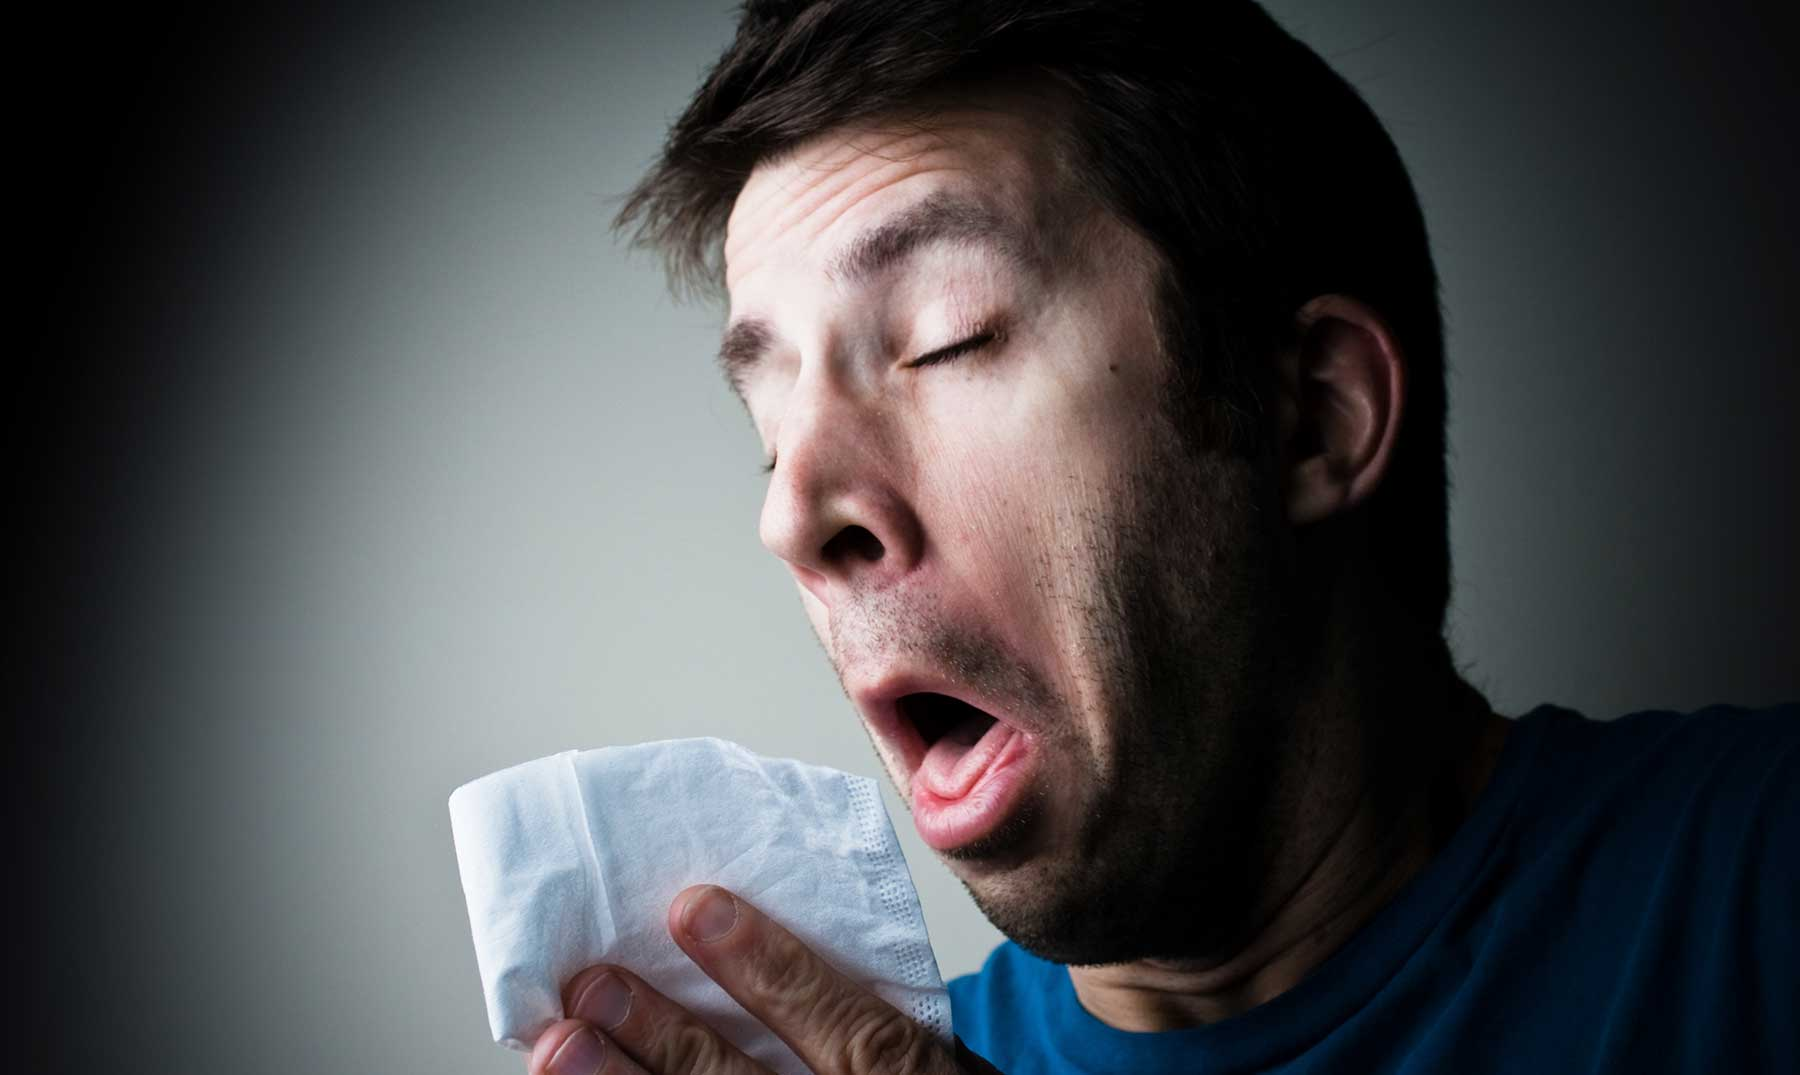 Top 10 Strangest Factos You Want to Know: Speed of a sneeze